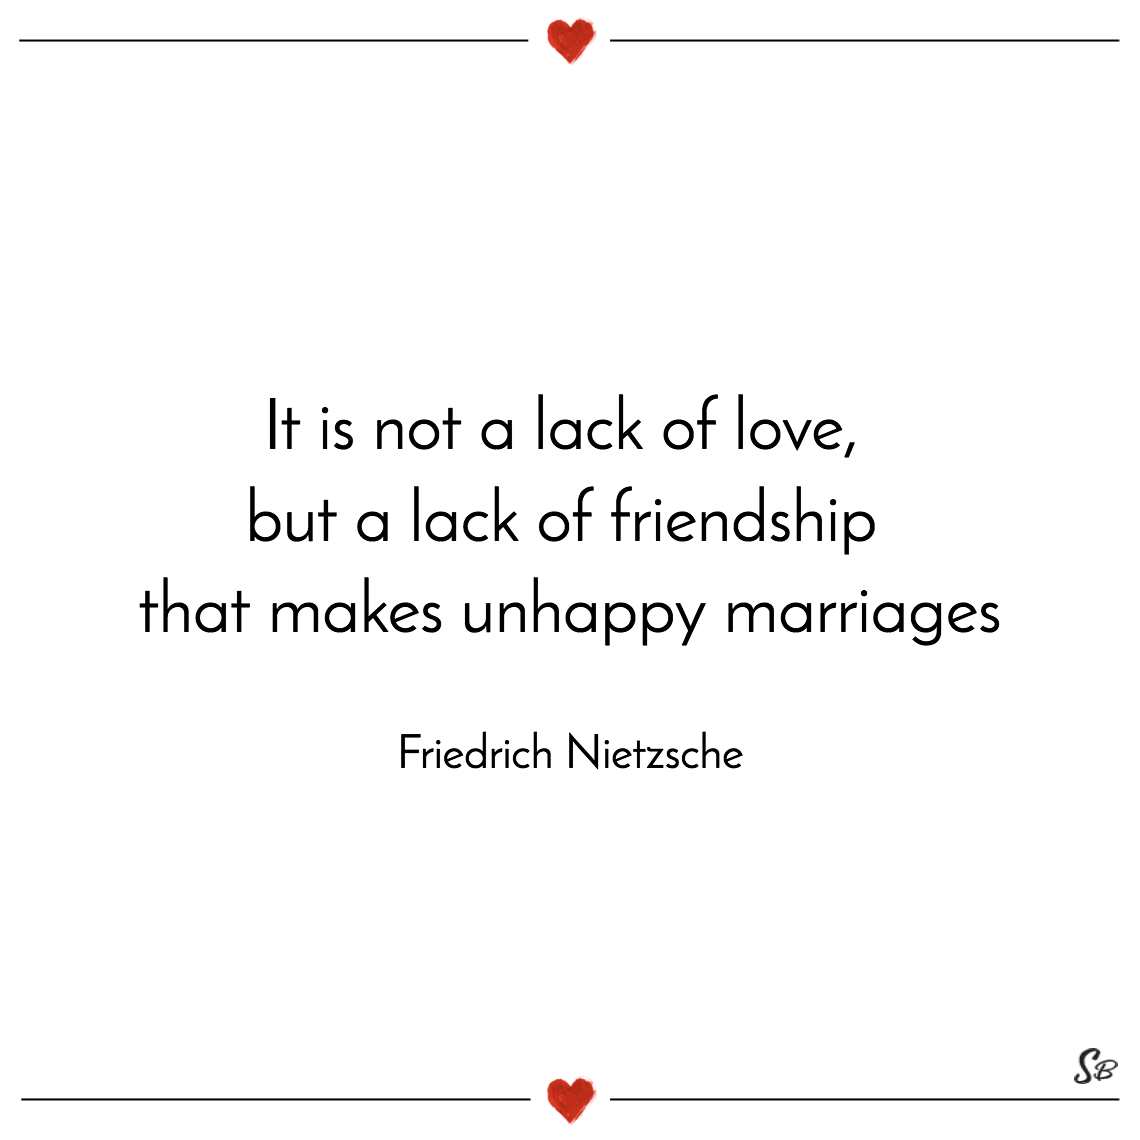 Quotes About Love And Friendship Stunning 31 Beautiful Marriage Quotes About Love And Friendship  Spirit Button